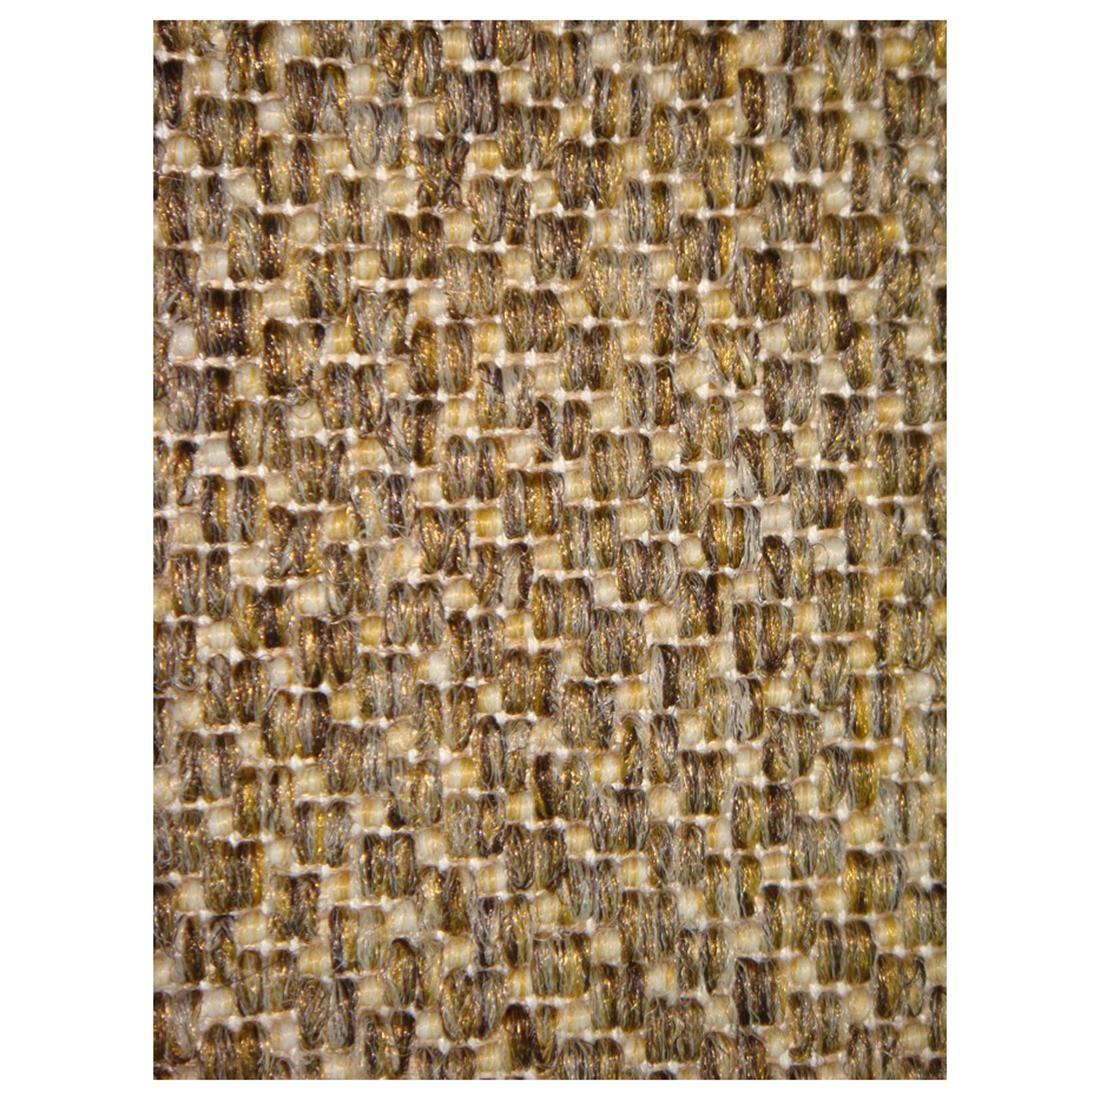 TAPETE NEW BOUCLE 6MM - 2,50x3,50